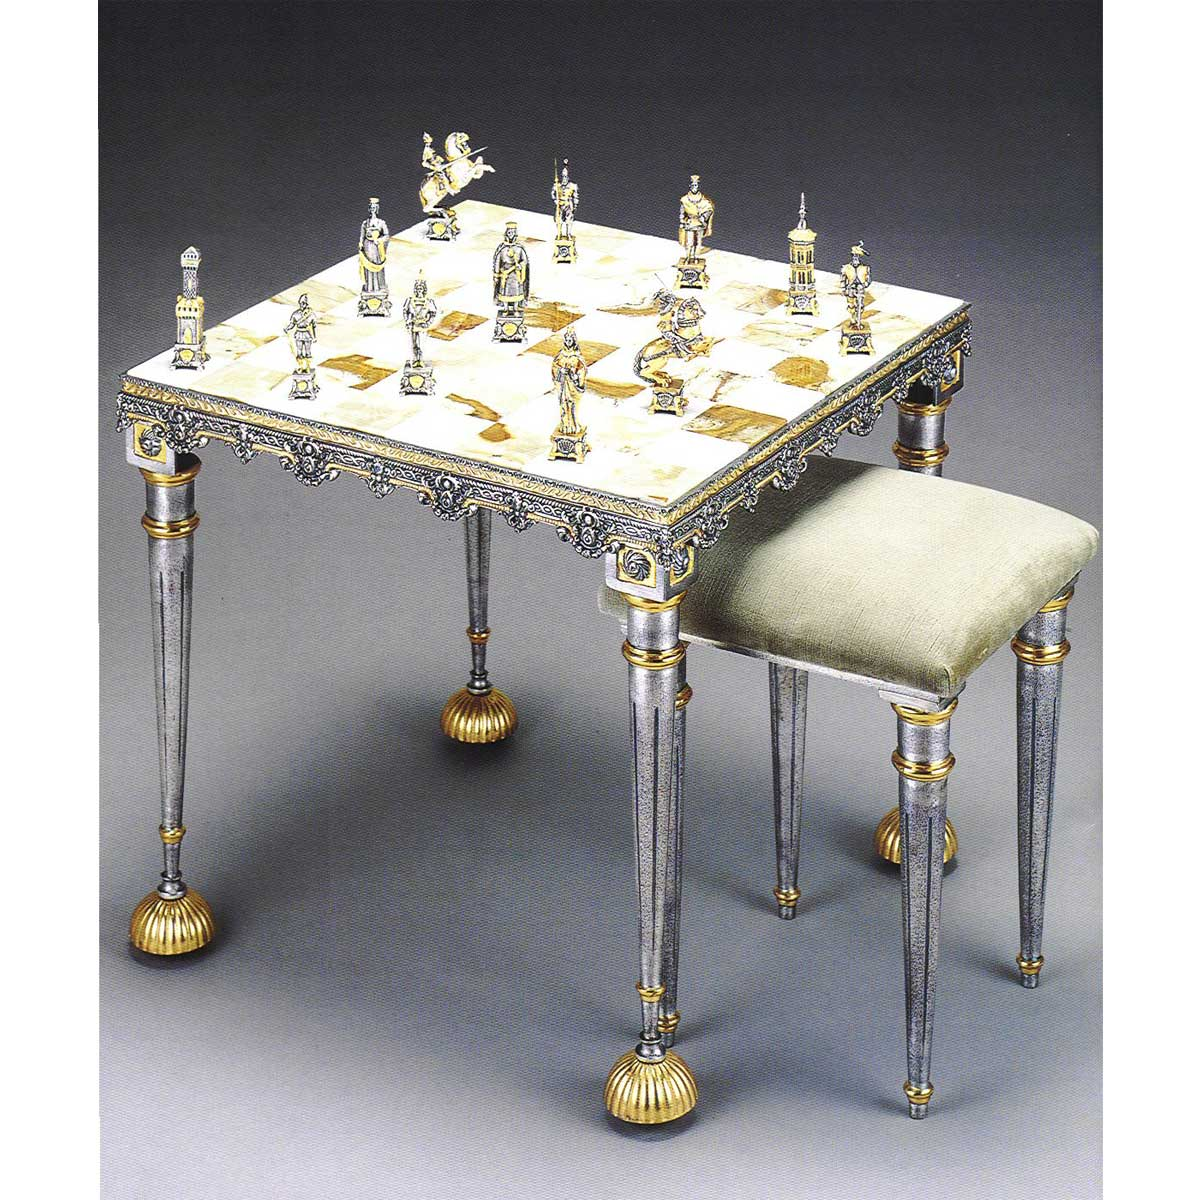 Vatican Soldiers vs Landsknechts Chess Set | Table and Chairs